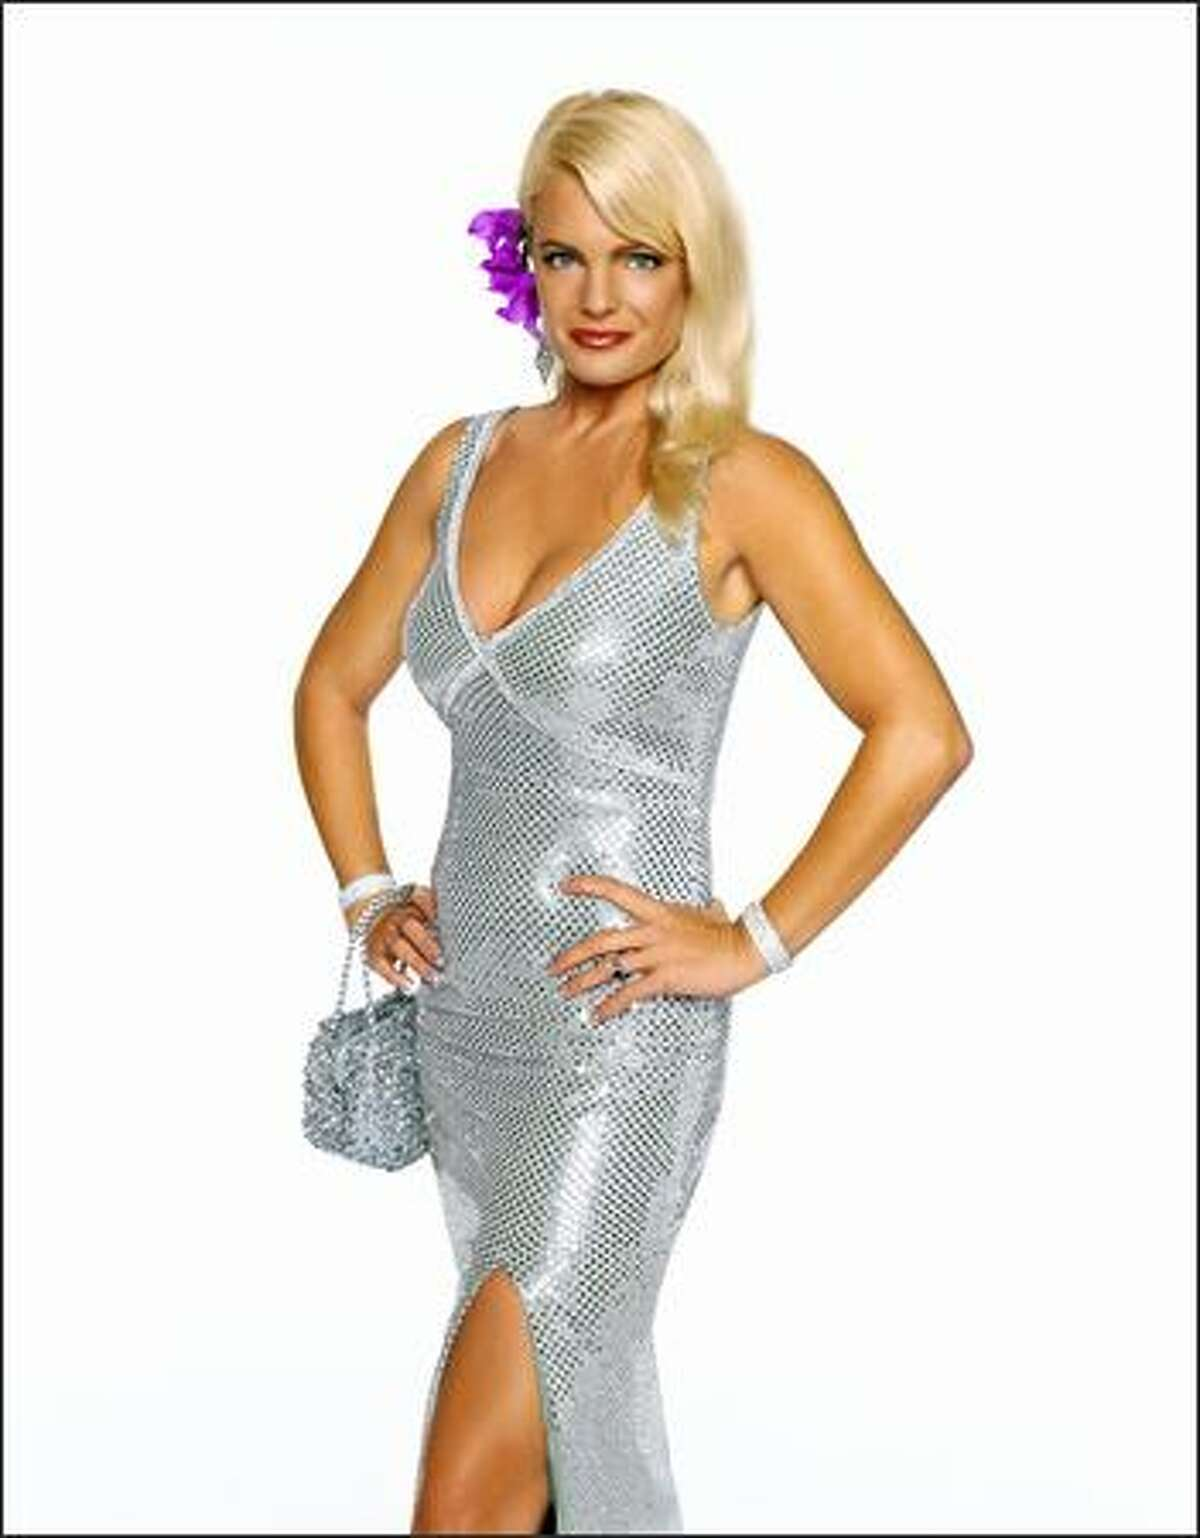 The other Ginger this season is Erika Eleniak. Best-known for her two seasons on